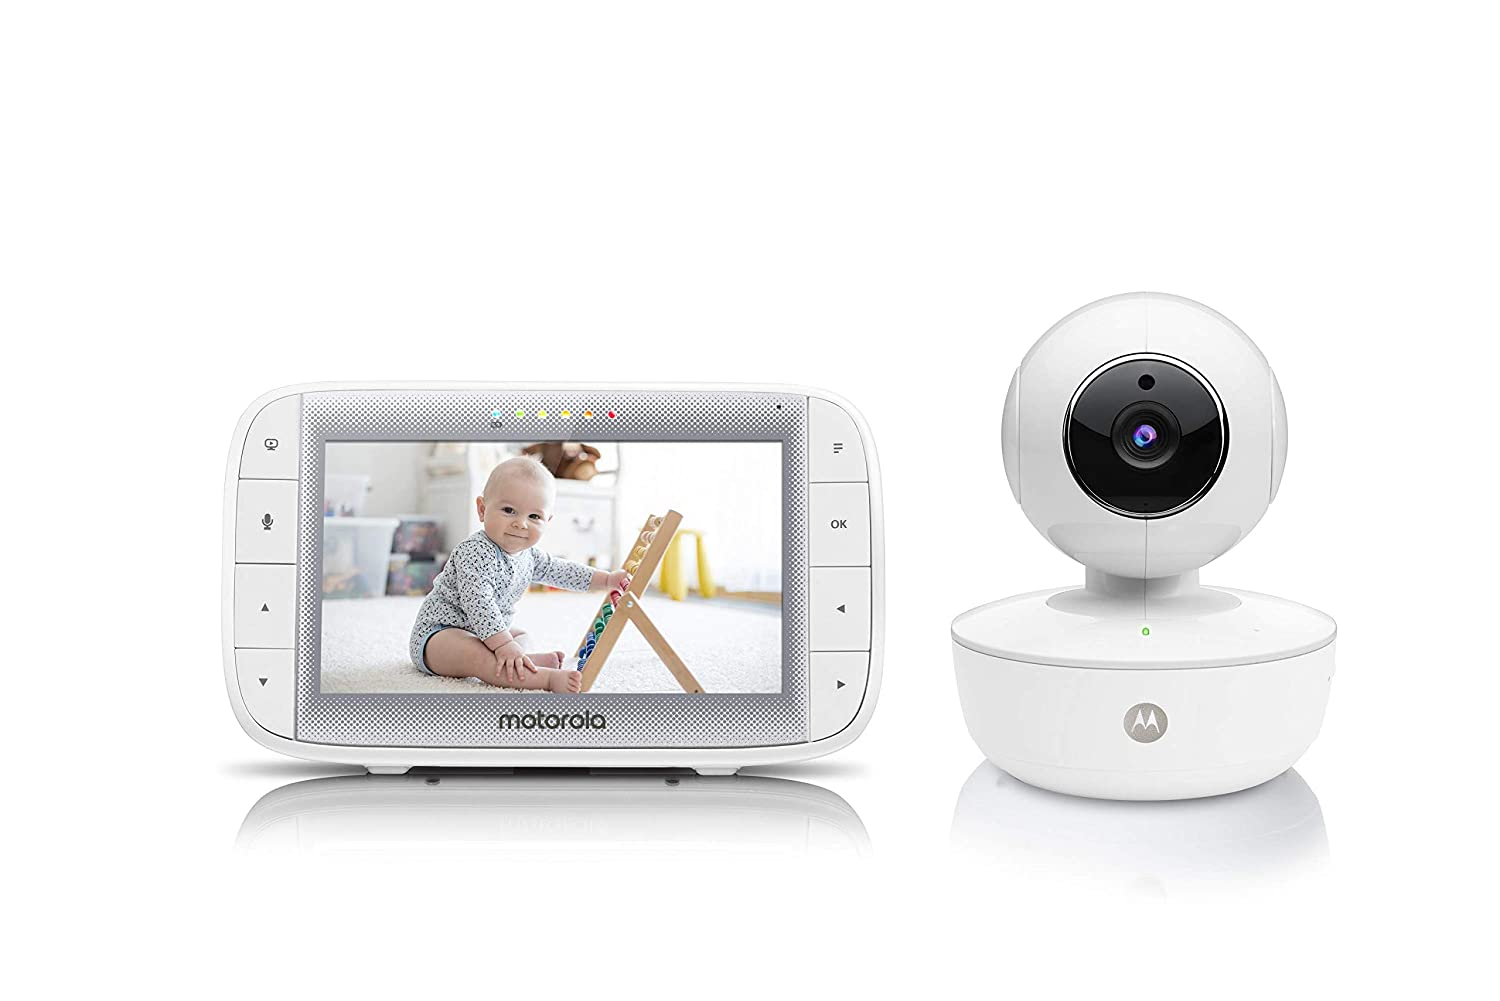 "Motorola Video Baby Monitor 5"" Color Parent Unit, Remote Pan/Tilt/Zoom, Portable Rechargeable Camera, Two-Way Audio, Night Vision, 5 Lullabies, MBP36XL : Baby"